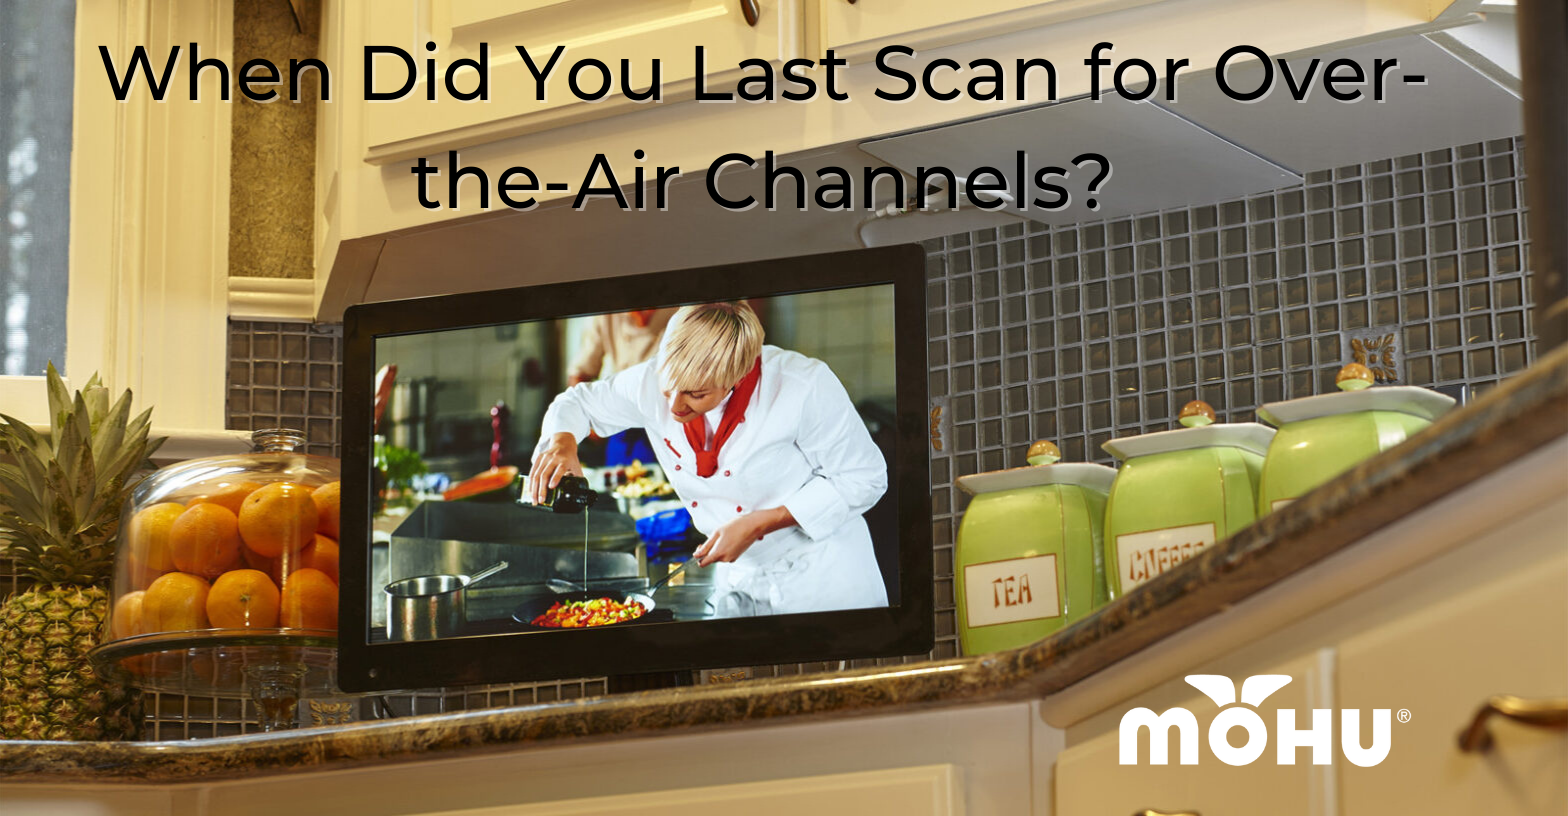 Photo of TV in kitchen, When Did You Last Scan for Over-the-Air Channels? Mohu logo